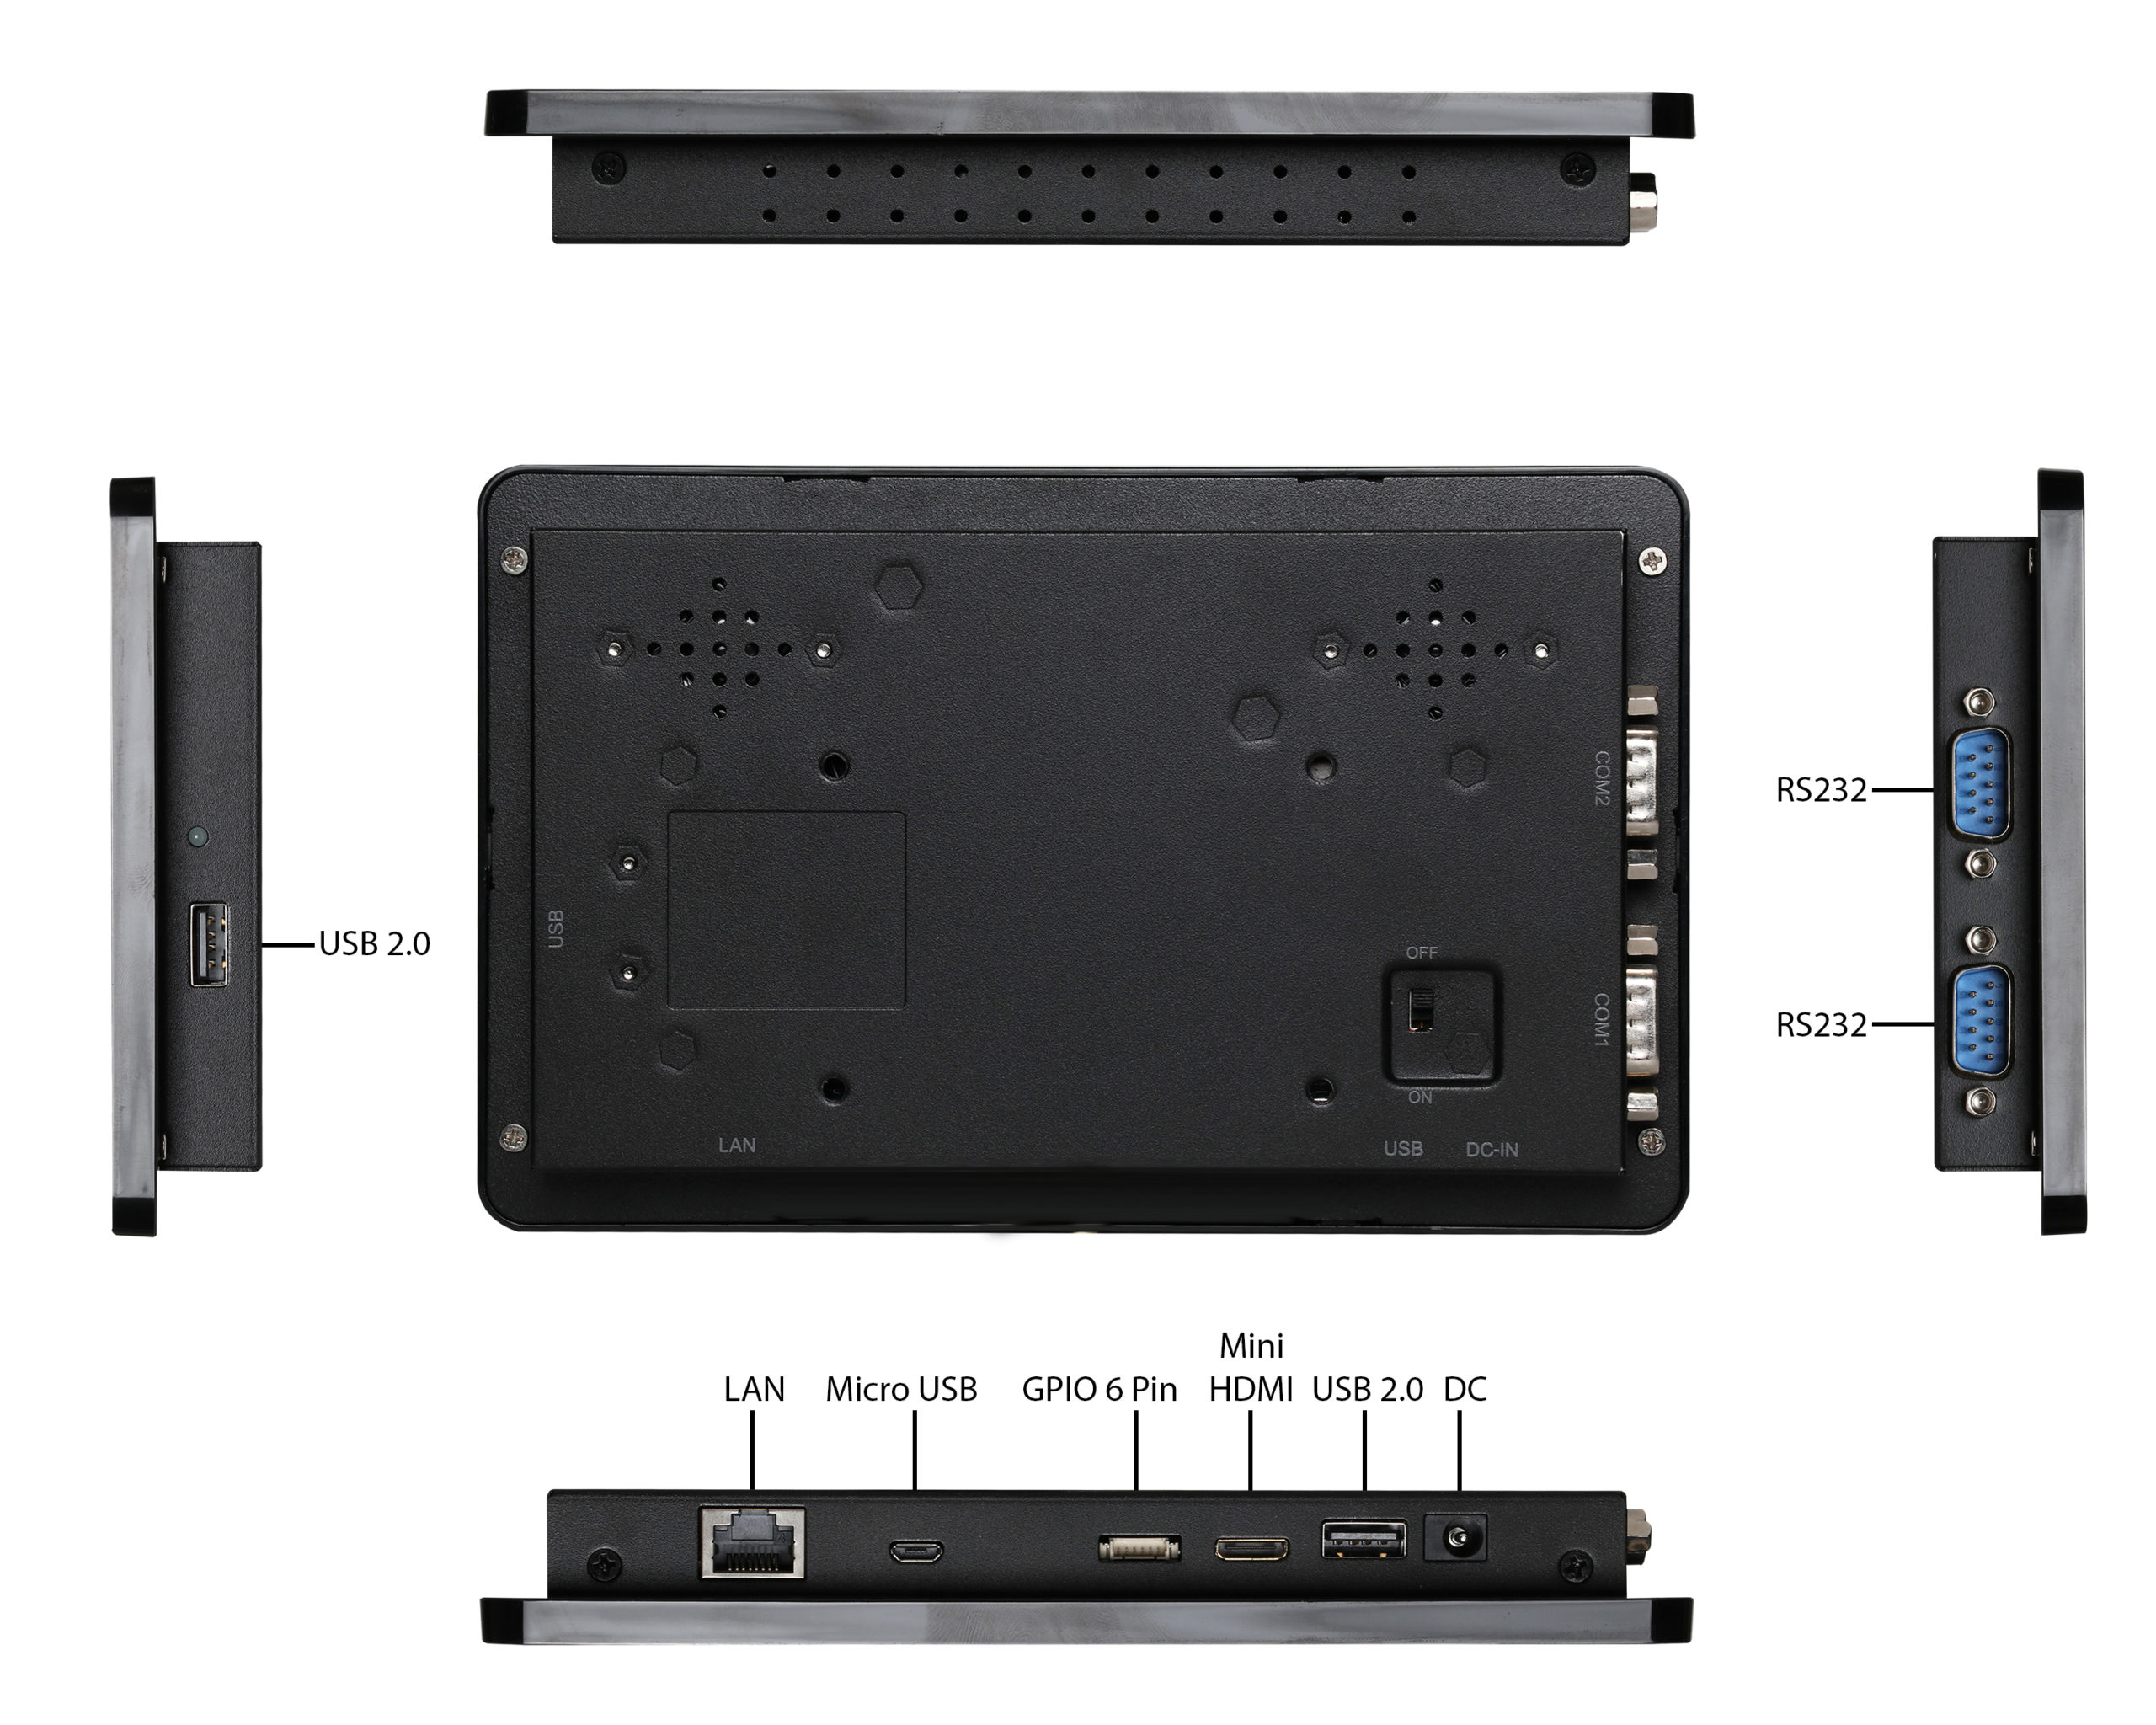 TP-A950-07 Inputs/Outputs